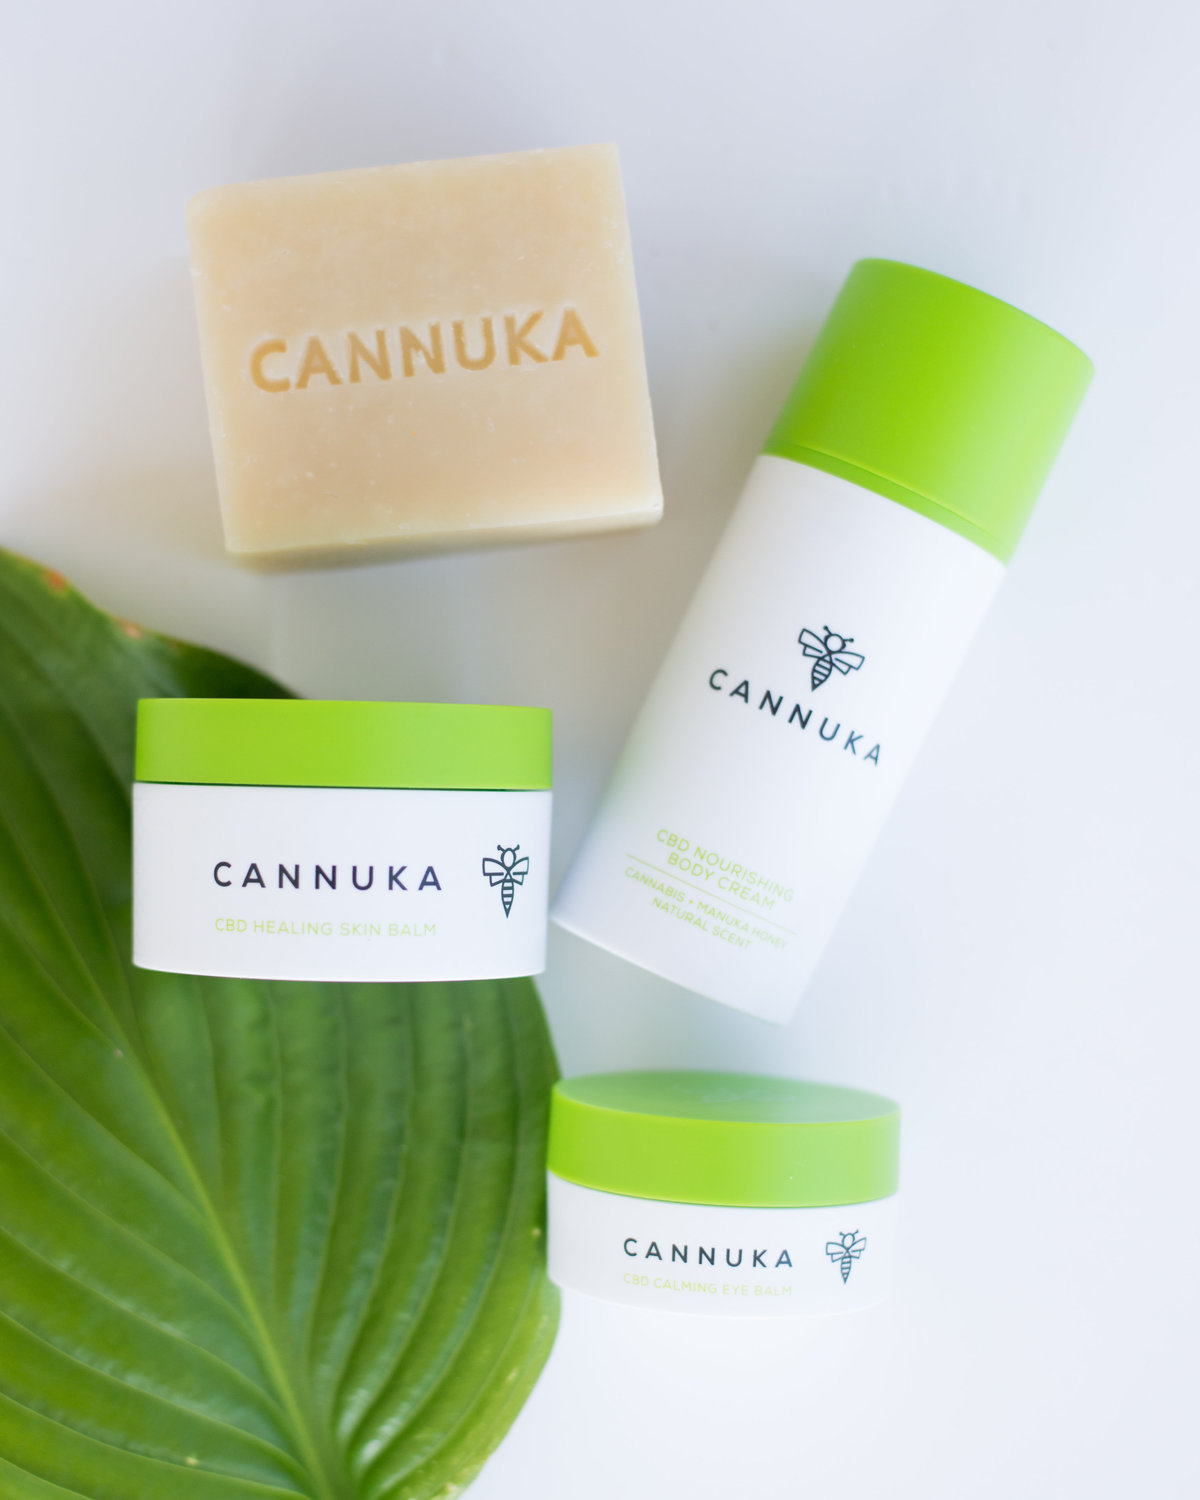 Cannuka Product-1